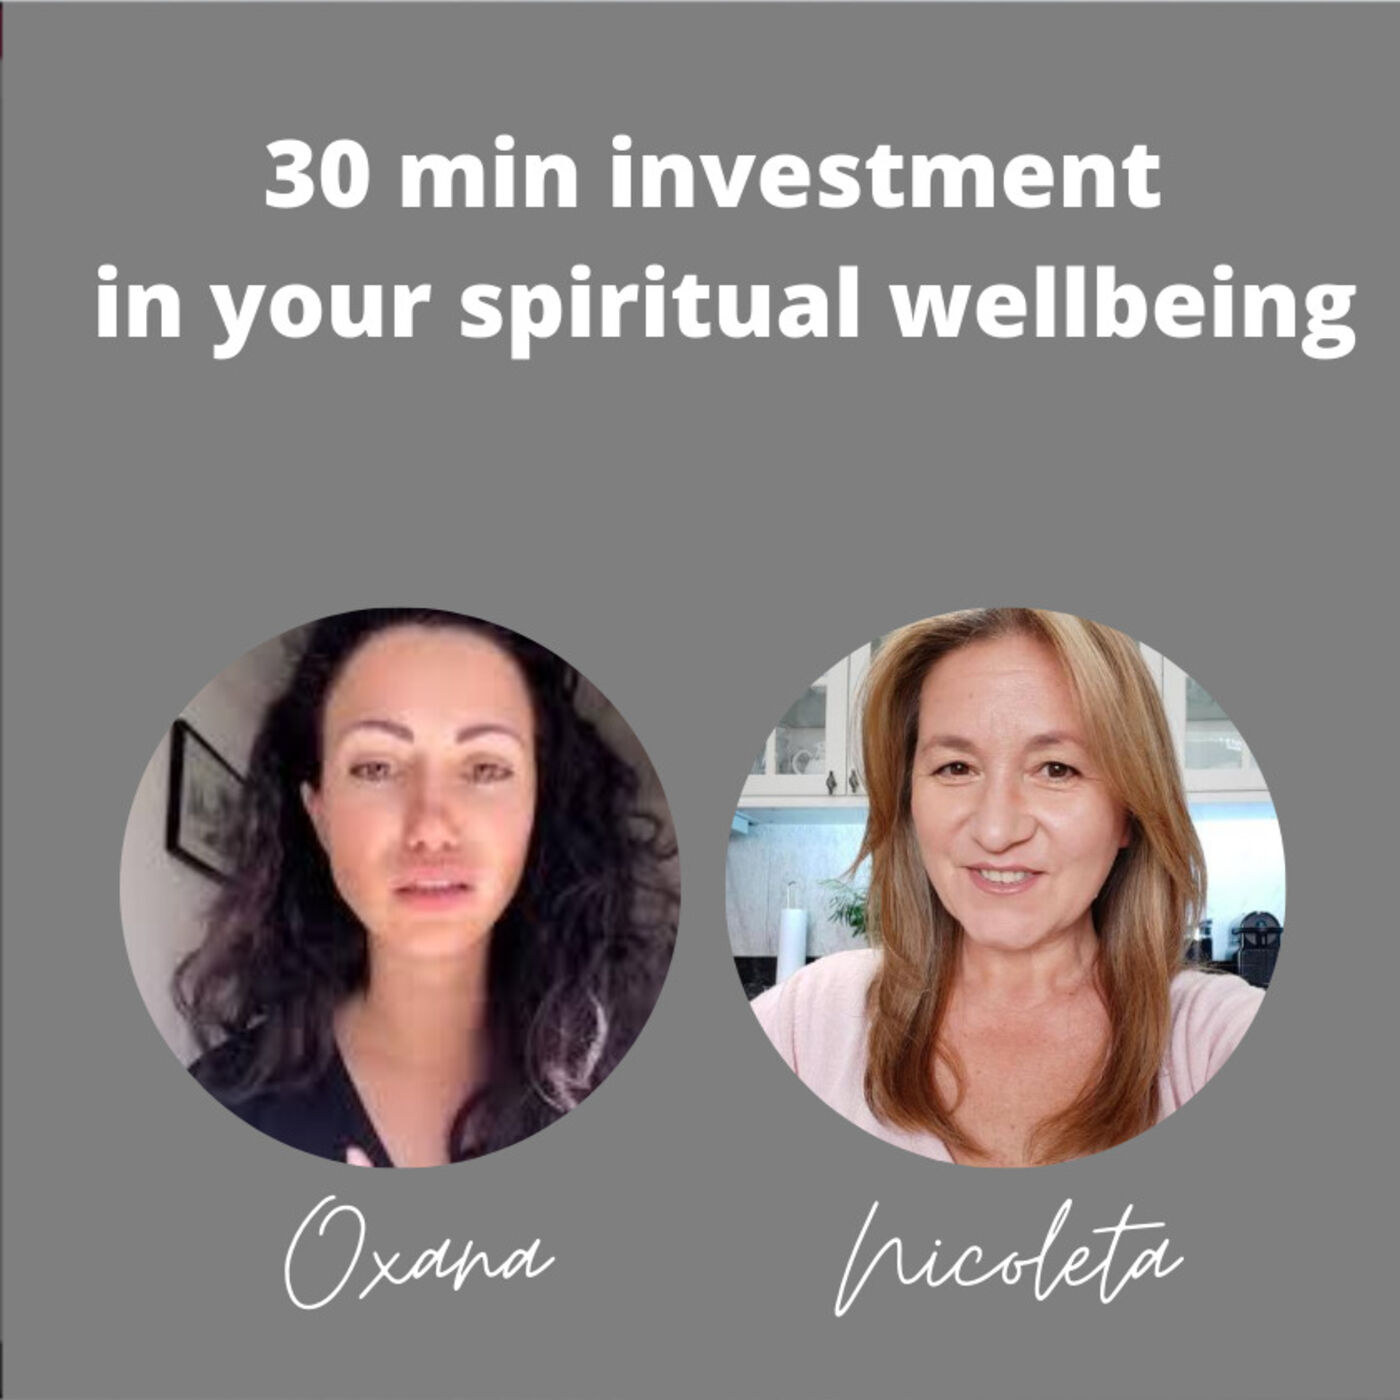 6 - 30 min investment in your spiritual wellbeing